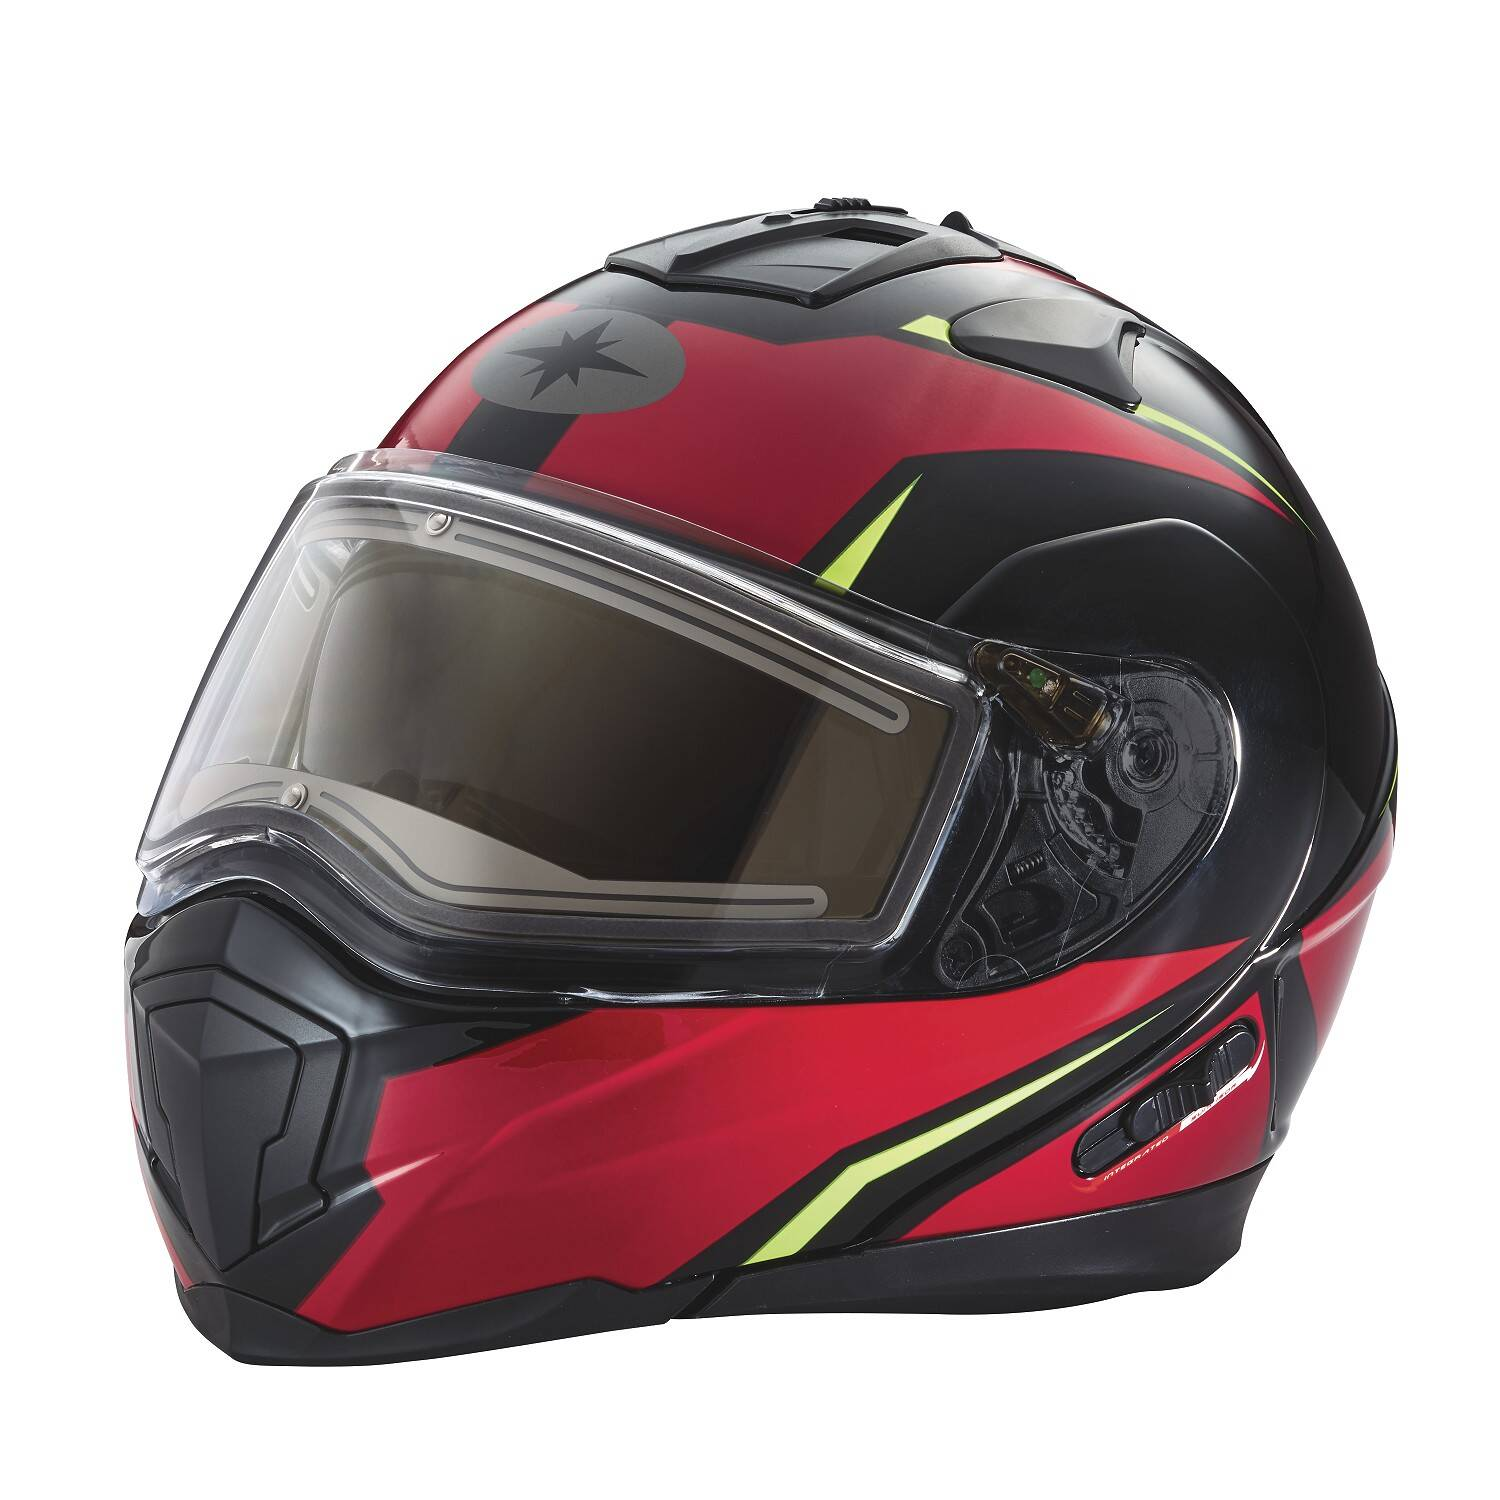 Modular 2.0 Adult Helmet with Electric Shield, Red/Lime